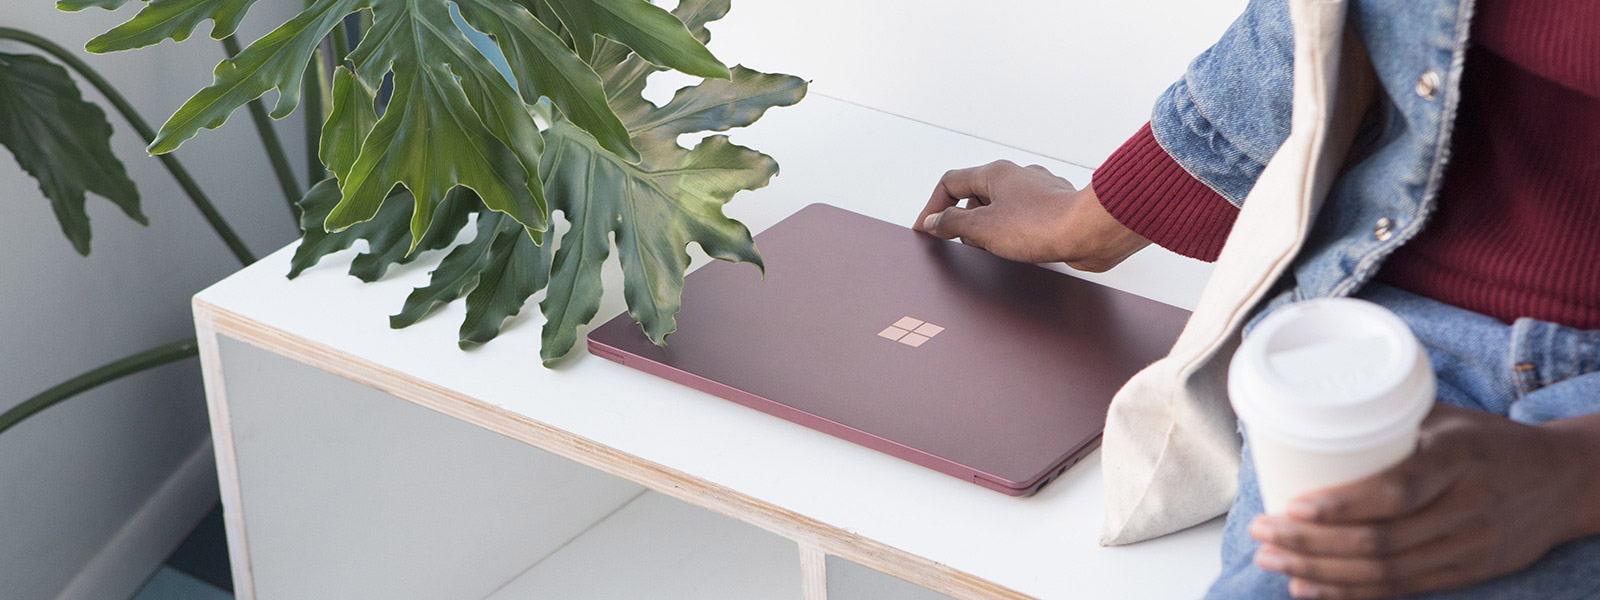 Surface Laptop resting on a bench